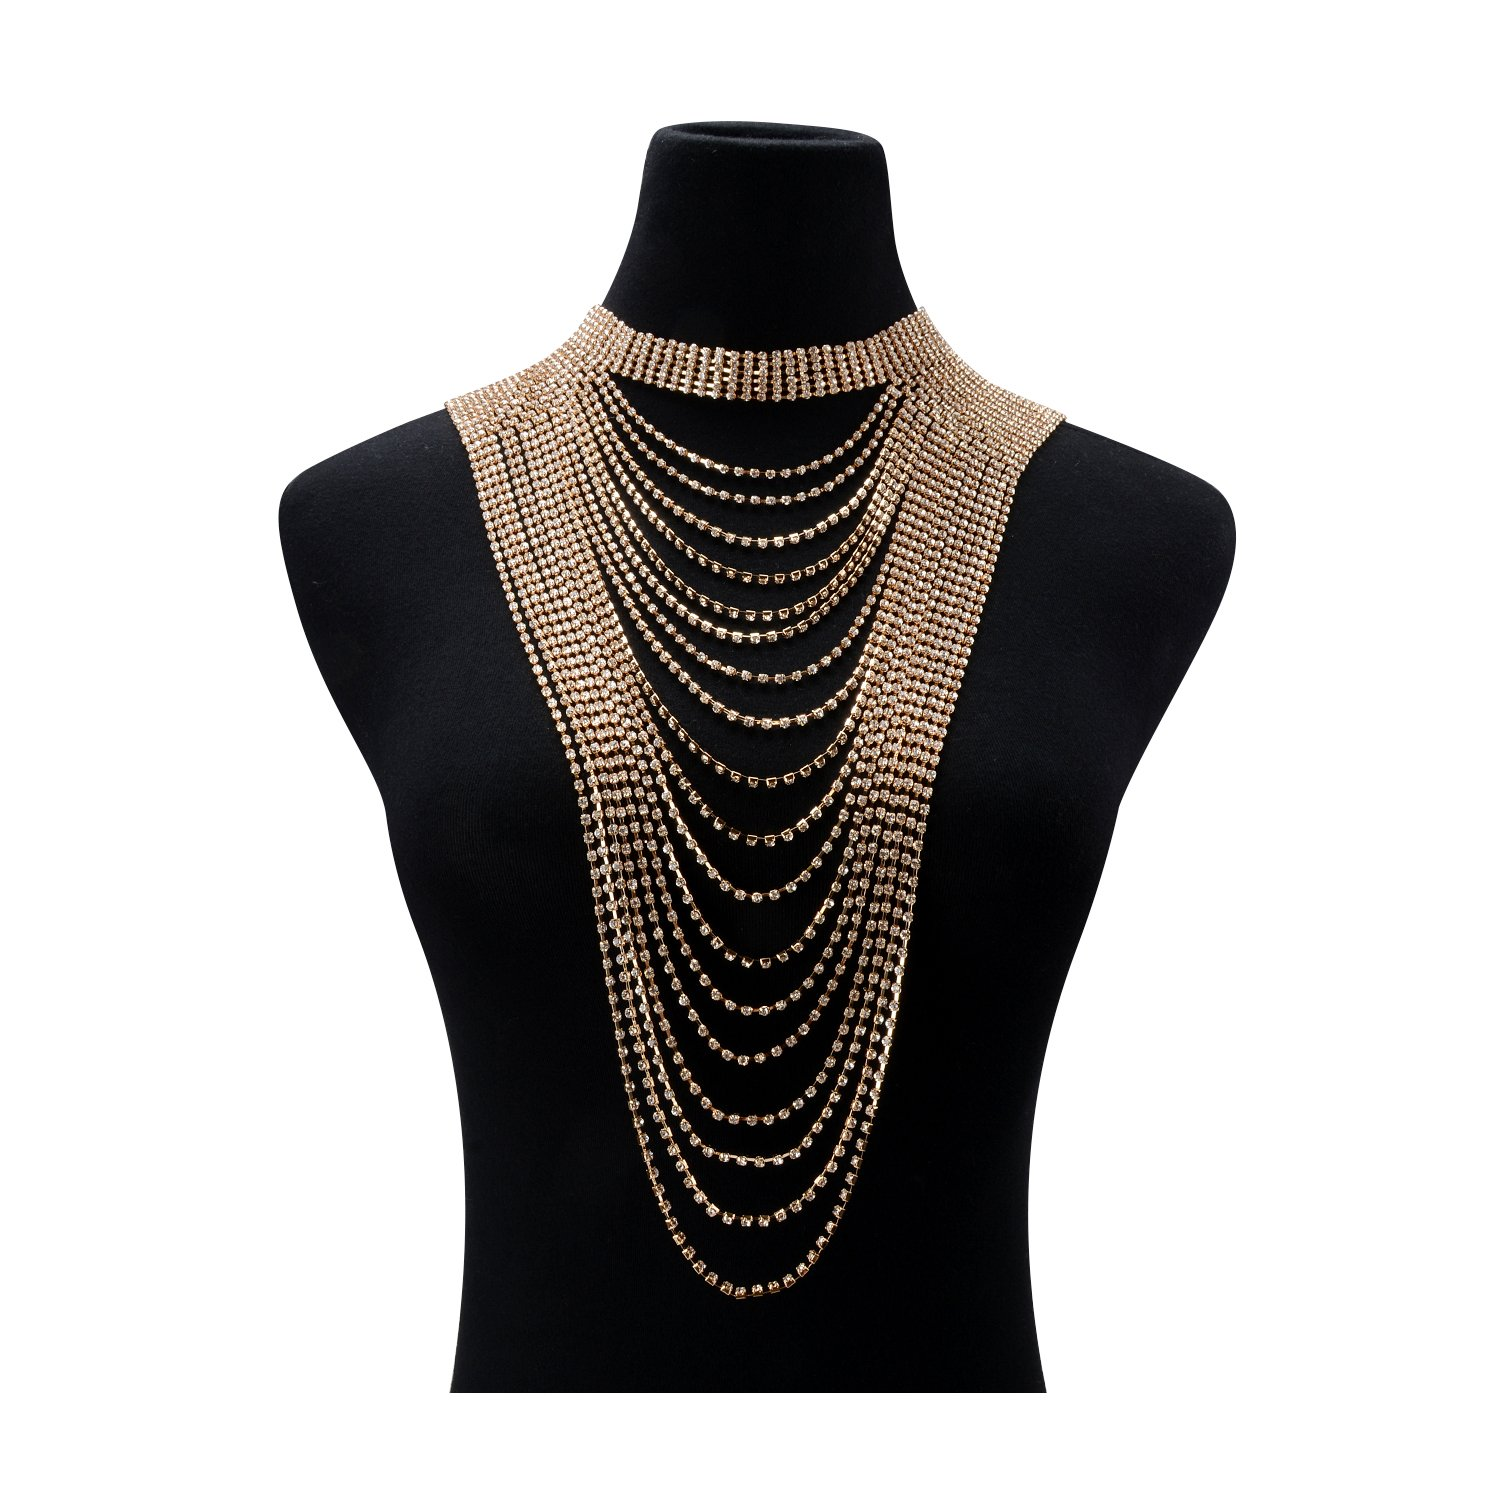 Statement Necklace for Women Multi-layers Tassels Wide Choker Pendant Formal Party Wedding Gold Chain 1pc with Gift Box - HLN68 Gold